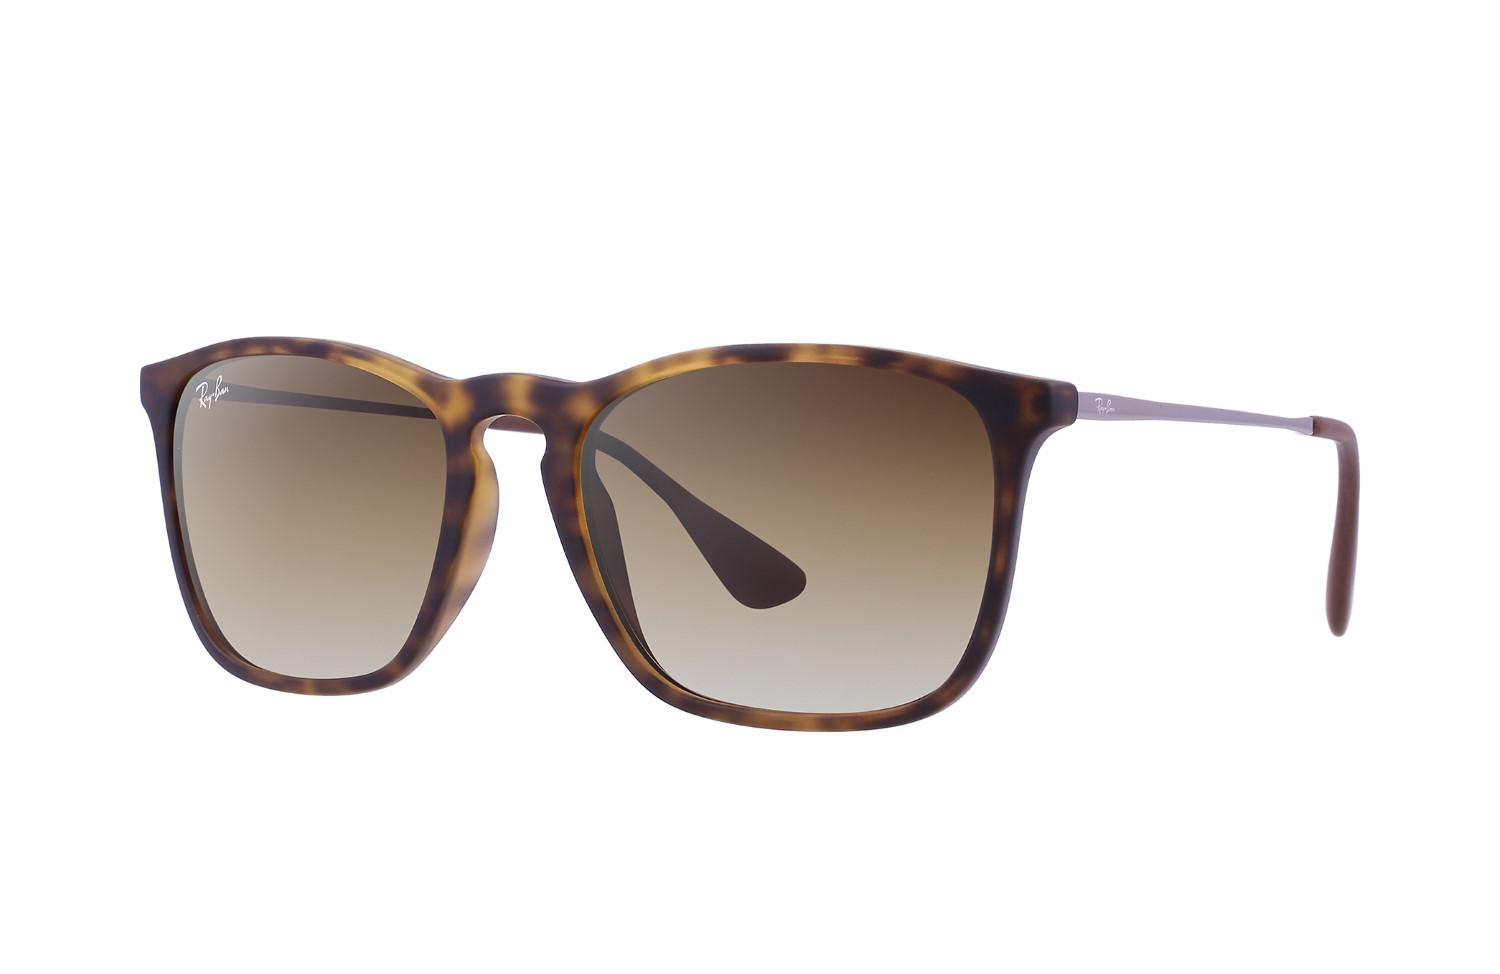 6f49ec1cce Lyst - Ray-Ban 0rb4187f 856 13 54 Havana Rubber brown Gradient Chris ...